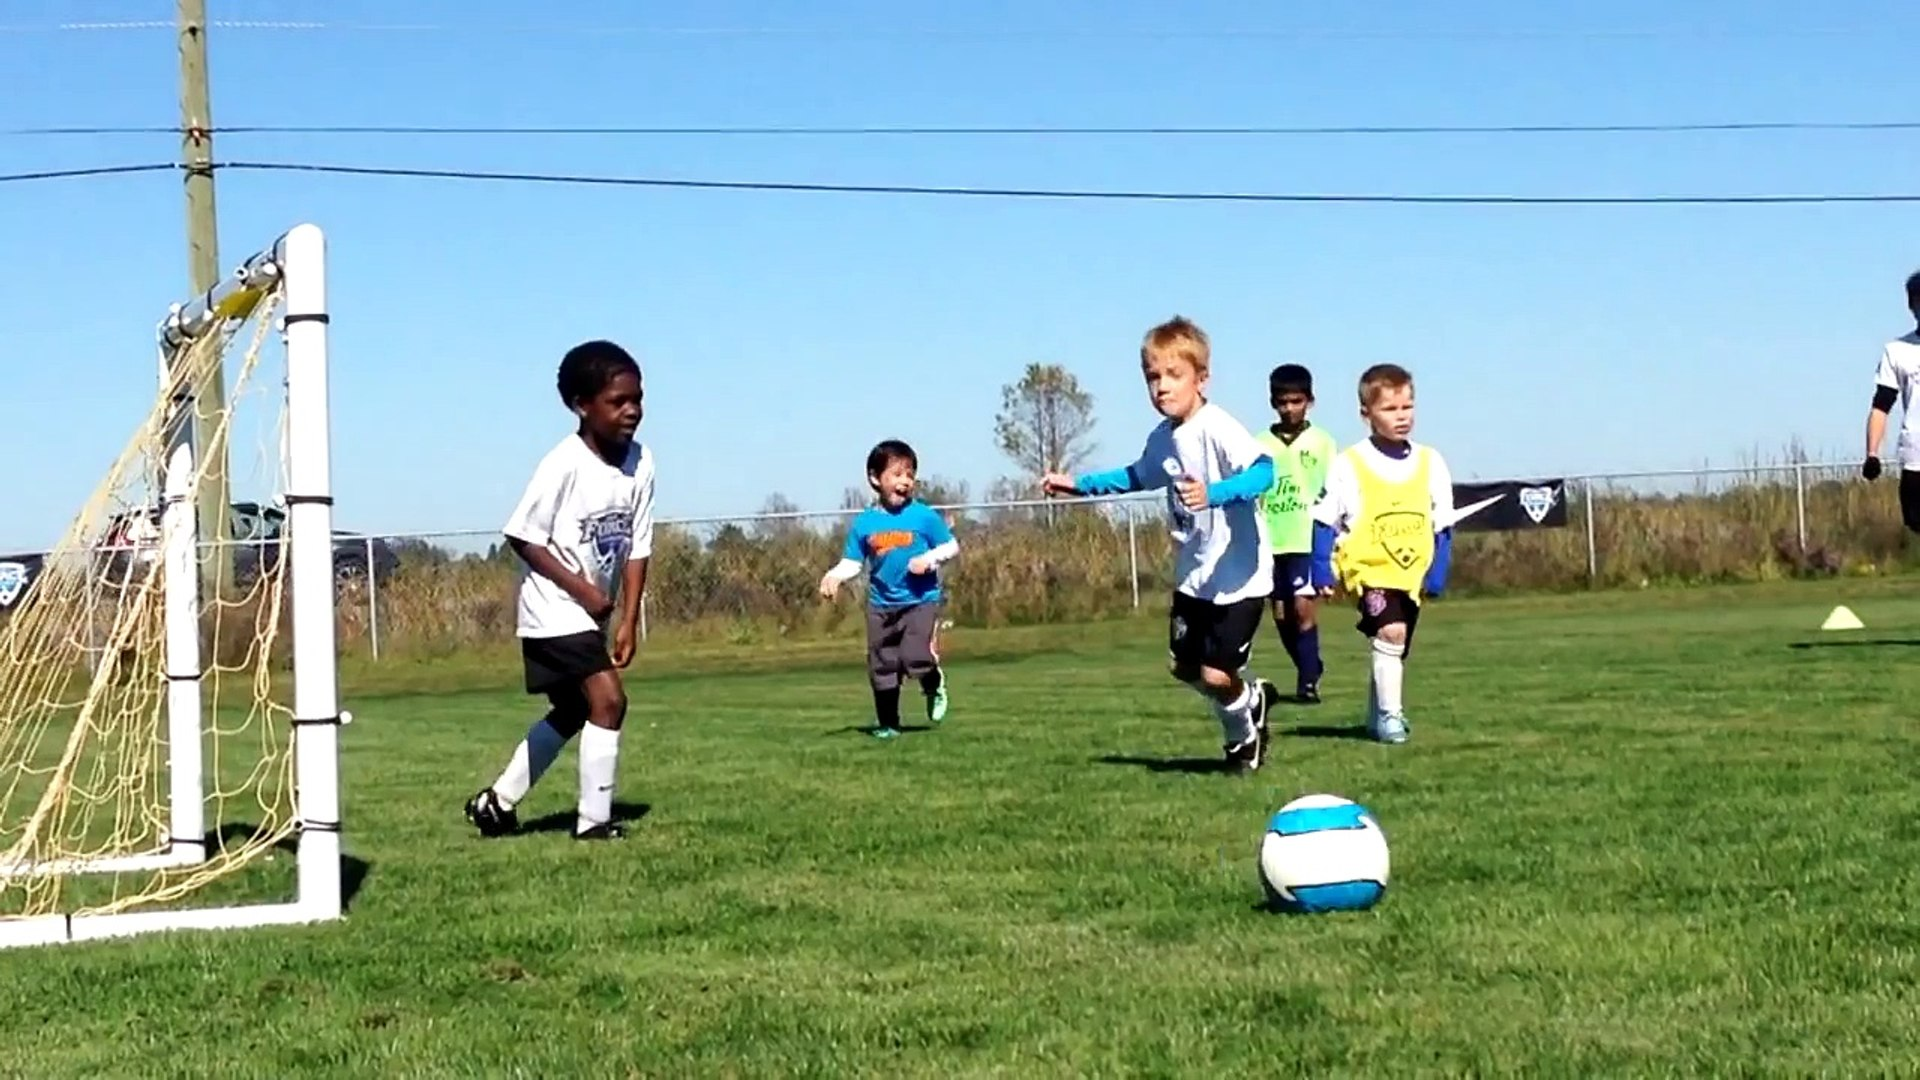 The -Next Messi-- - 6 Year Old Soccer Player-. -Young Messi-!!